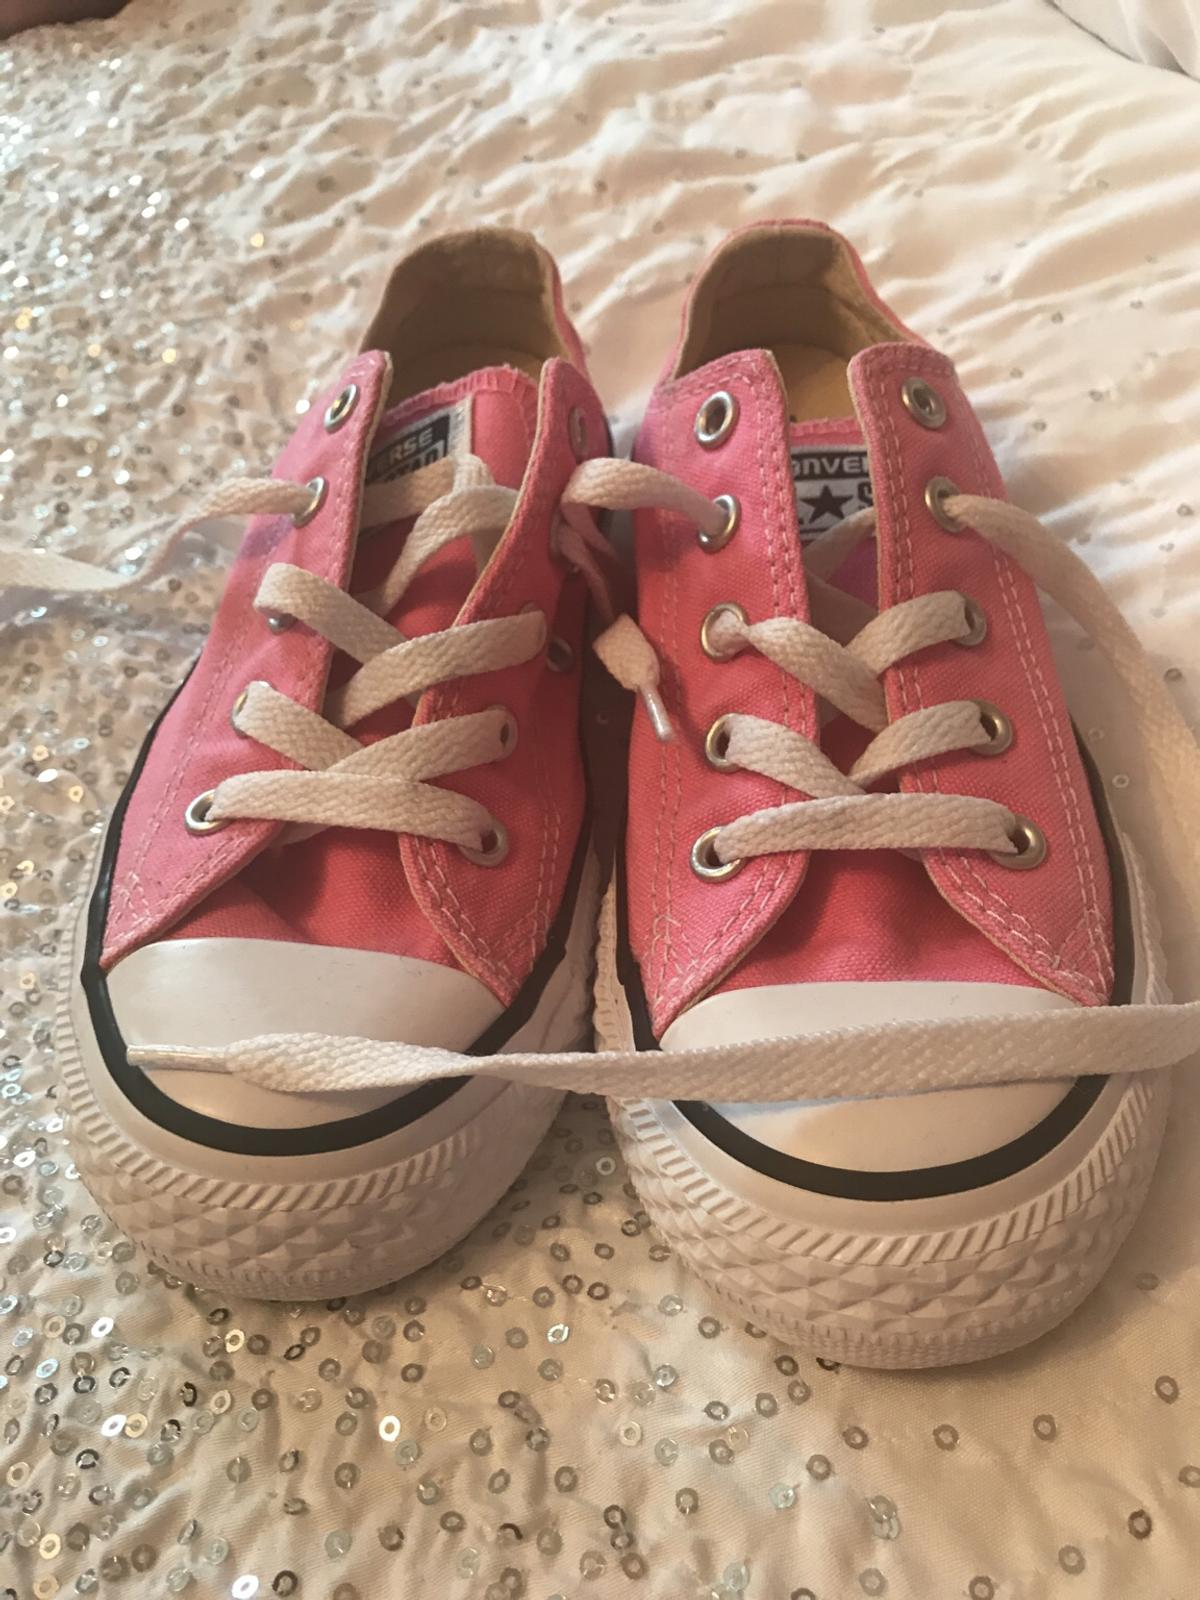 0fce17b6647c Girls size 13 pink converse in London for £8.00 for sale - Shpock